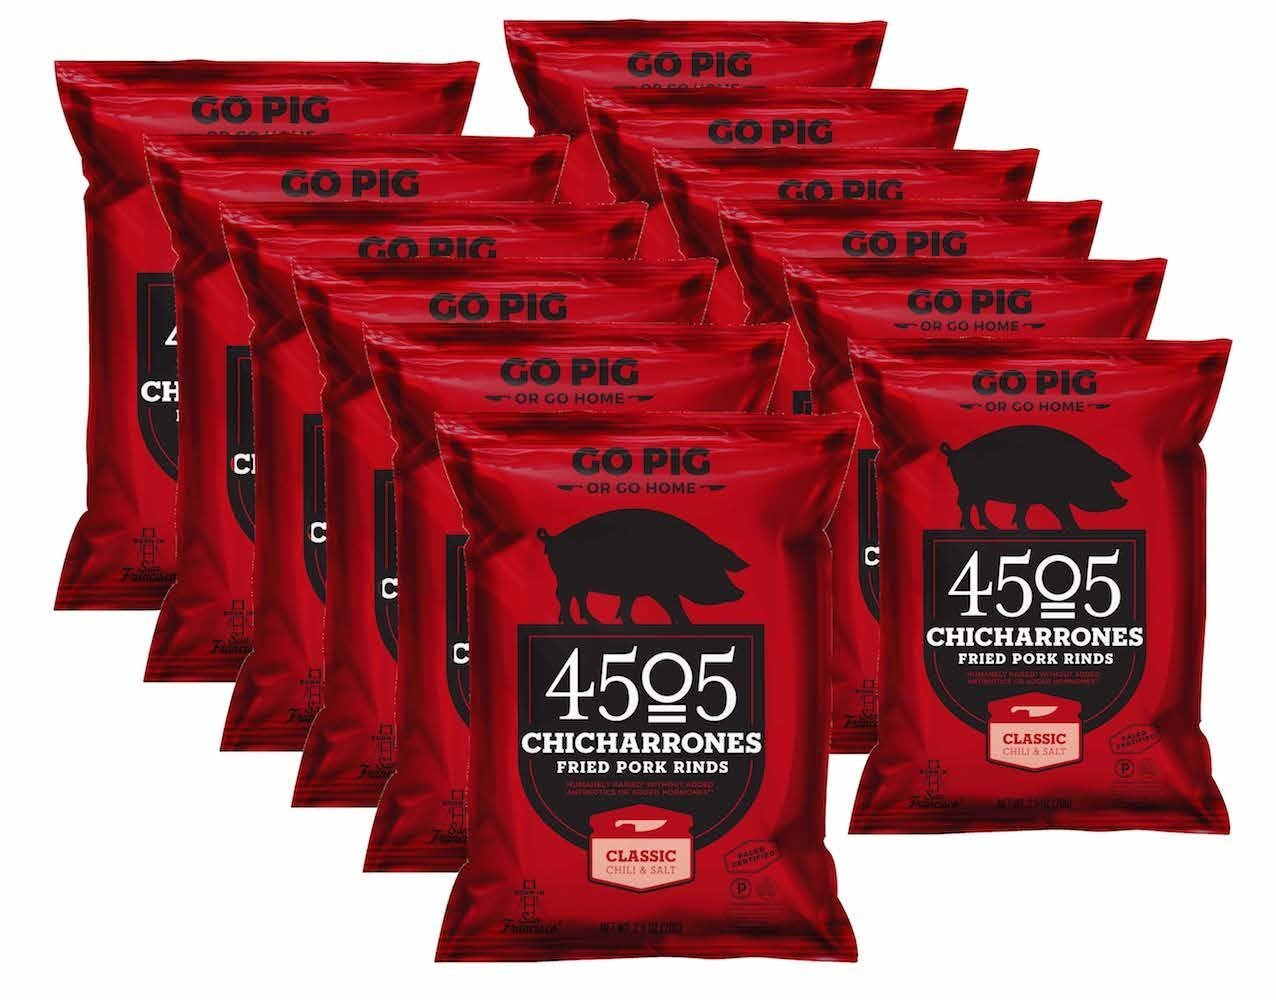 4505 Chicharrones (Fried Pork Rinds) Classic Chili & Salt, 2.5 oz, 12-pack by 4505 Meats (Image #2)